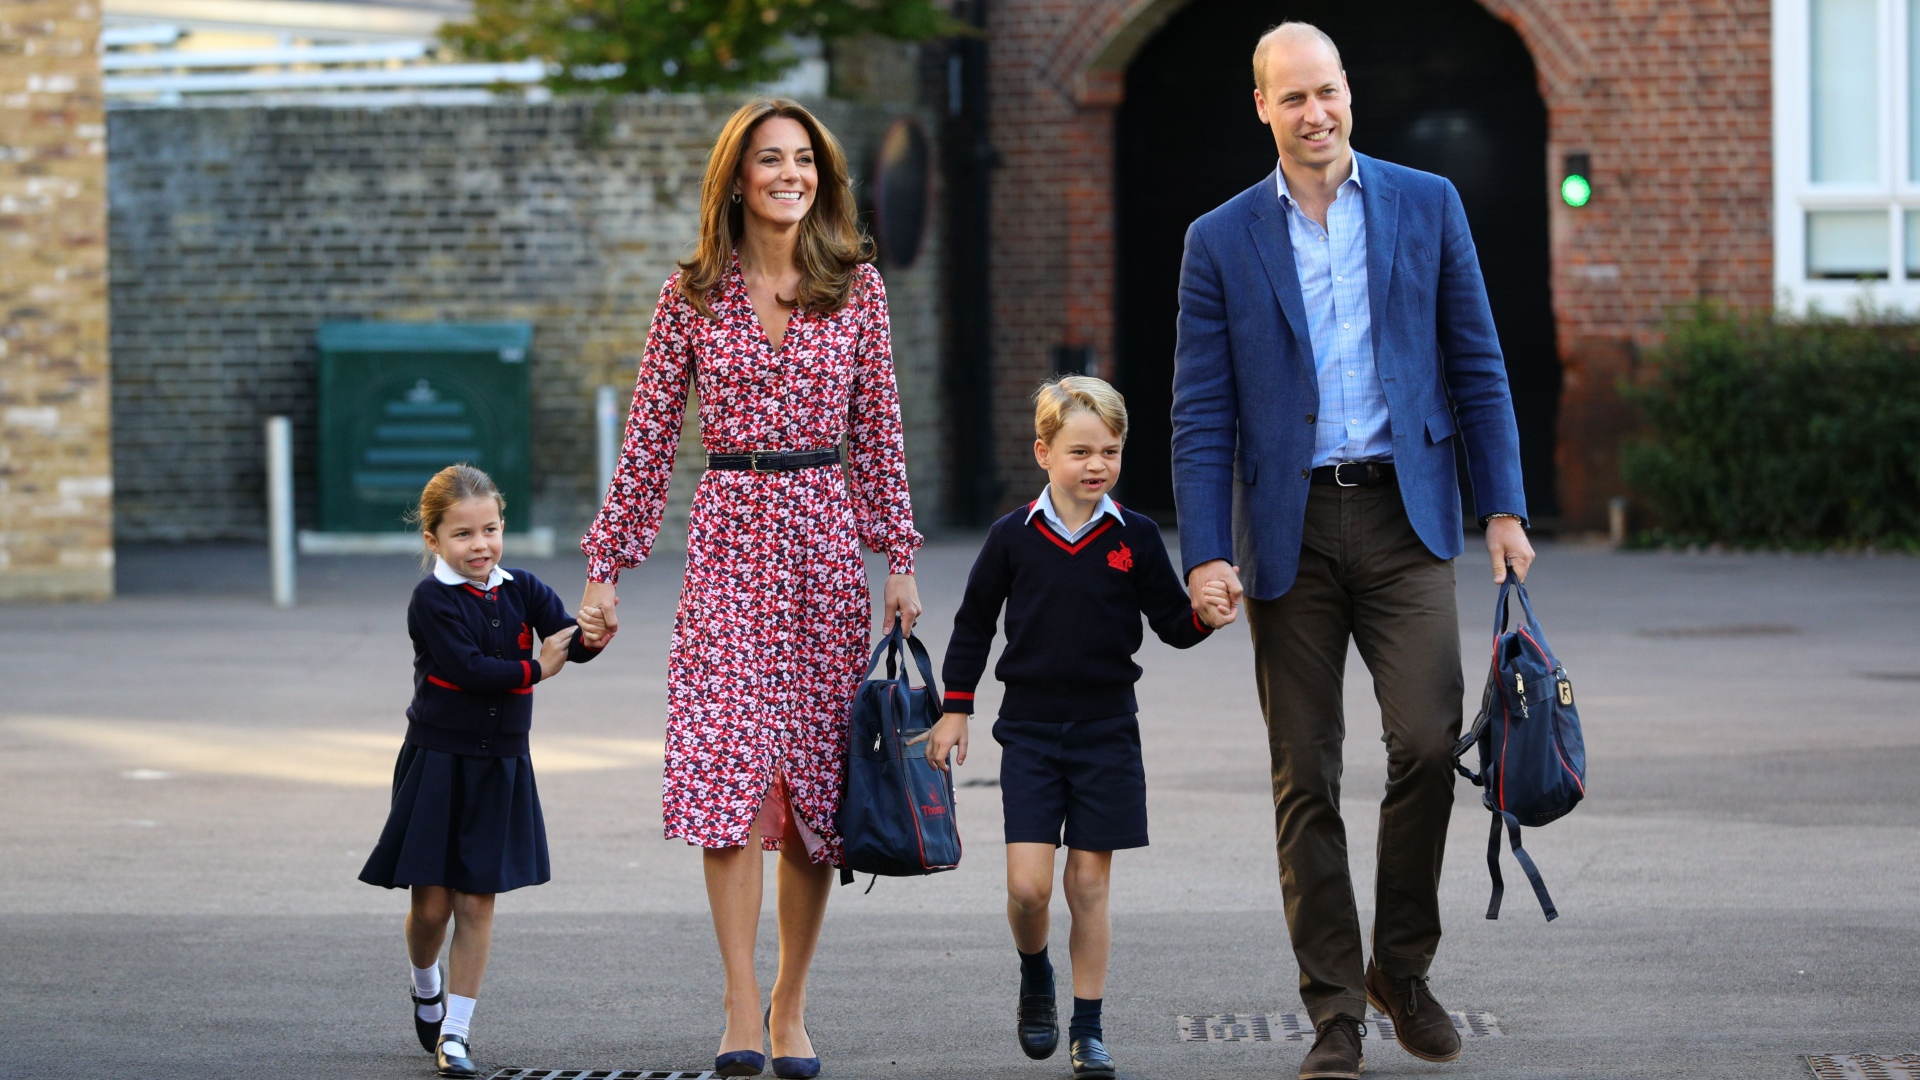 Prince George, Princess Charlotte, & Prince Louis Are Too Cute in This New Family Photo